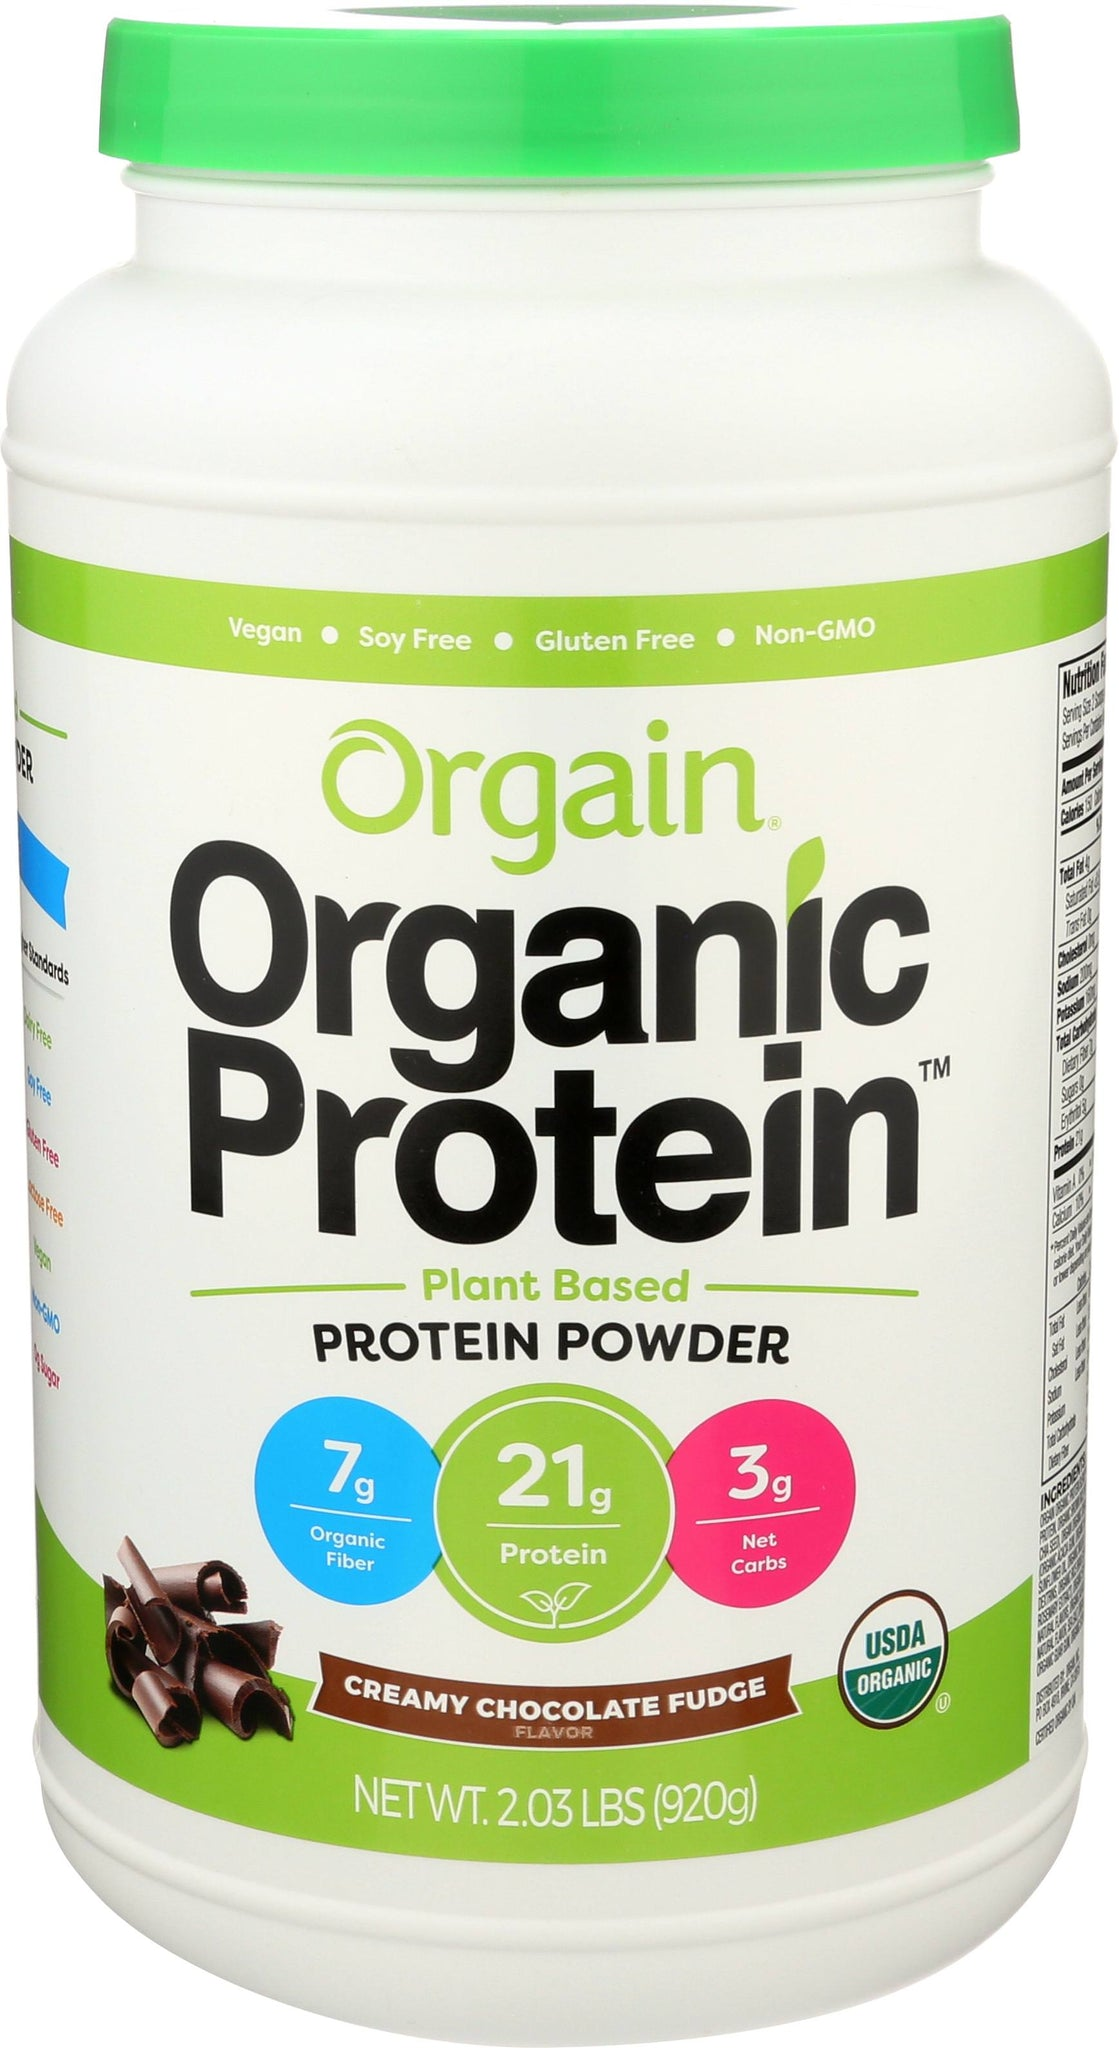 Orgain Creamy Chocolate Fudge Plant Based Protein Powder, 2.03 Lb (Pack of 1)